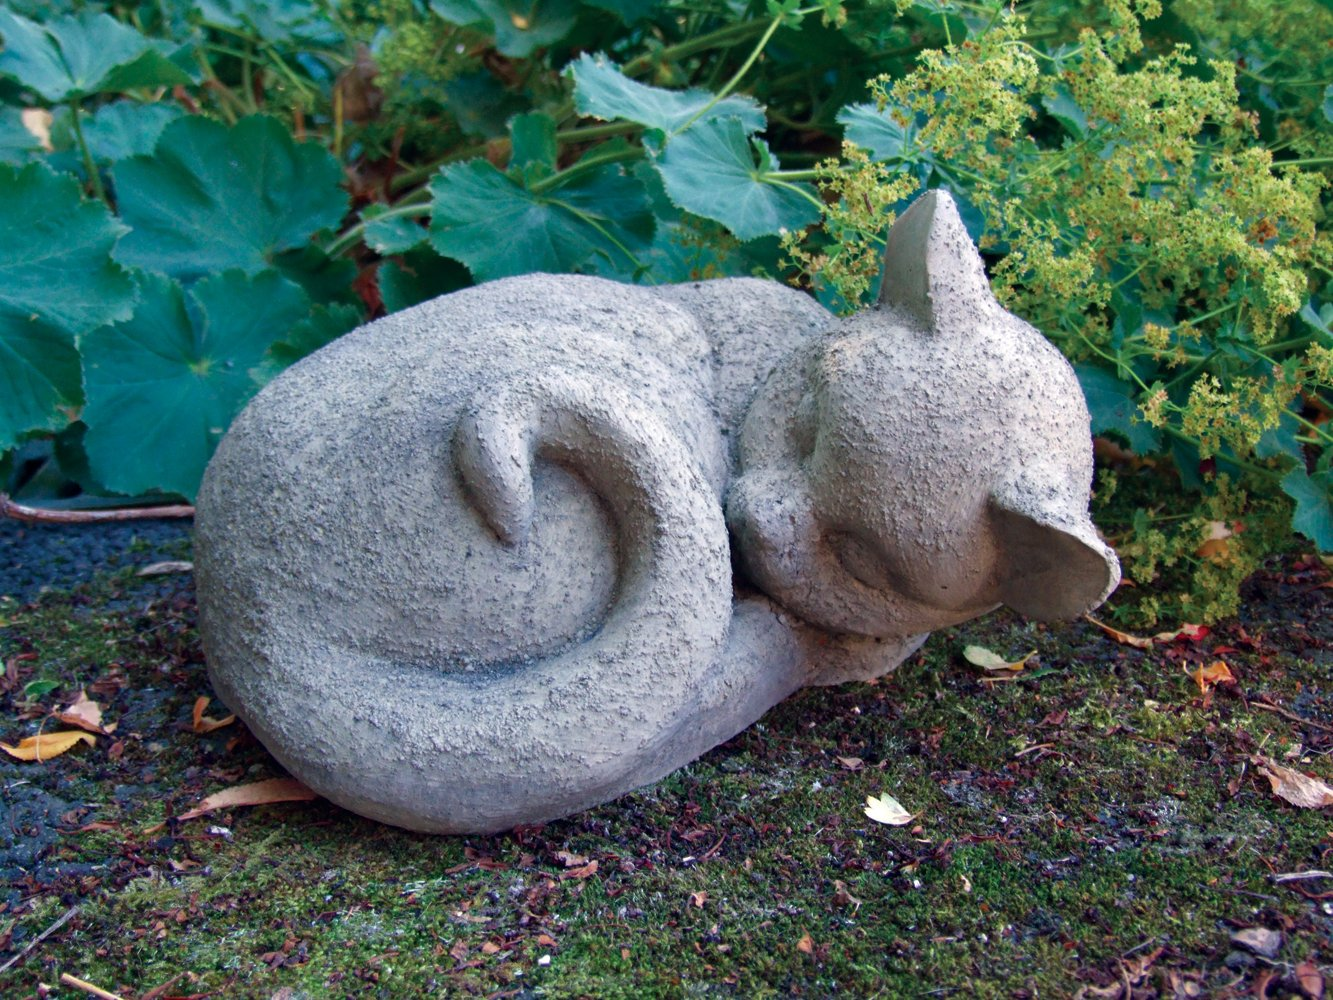 Genial Garden Ornaments   Sleeping Cat Statue Sculpture: Amazon.co.uk: Garden U0026  Outdoors